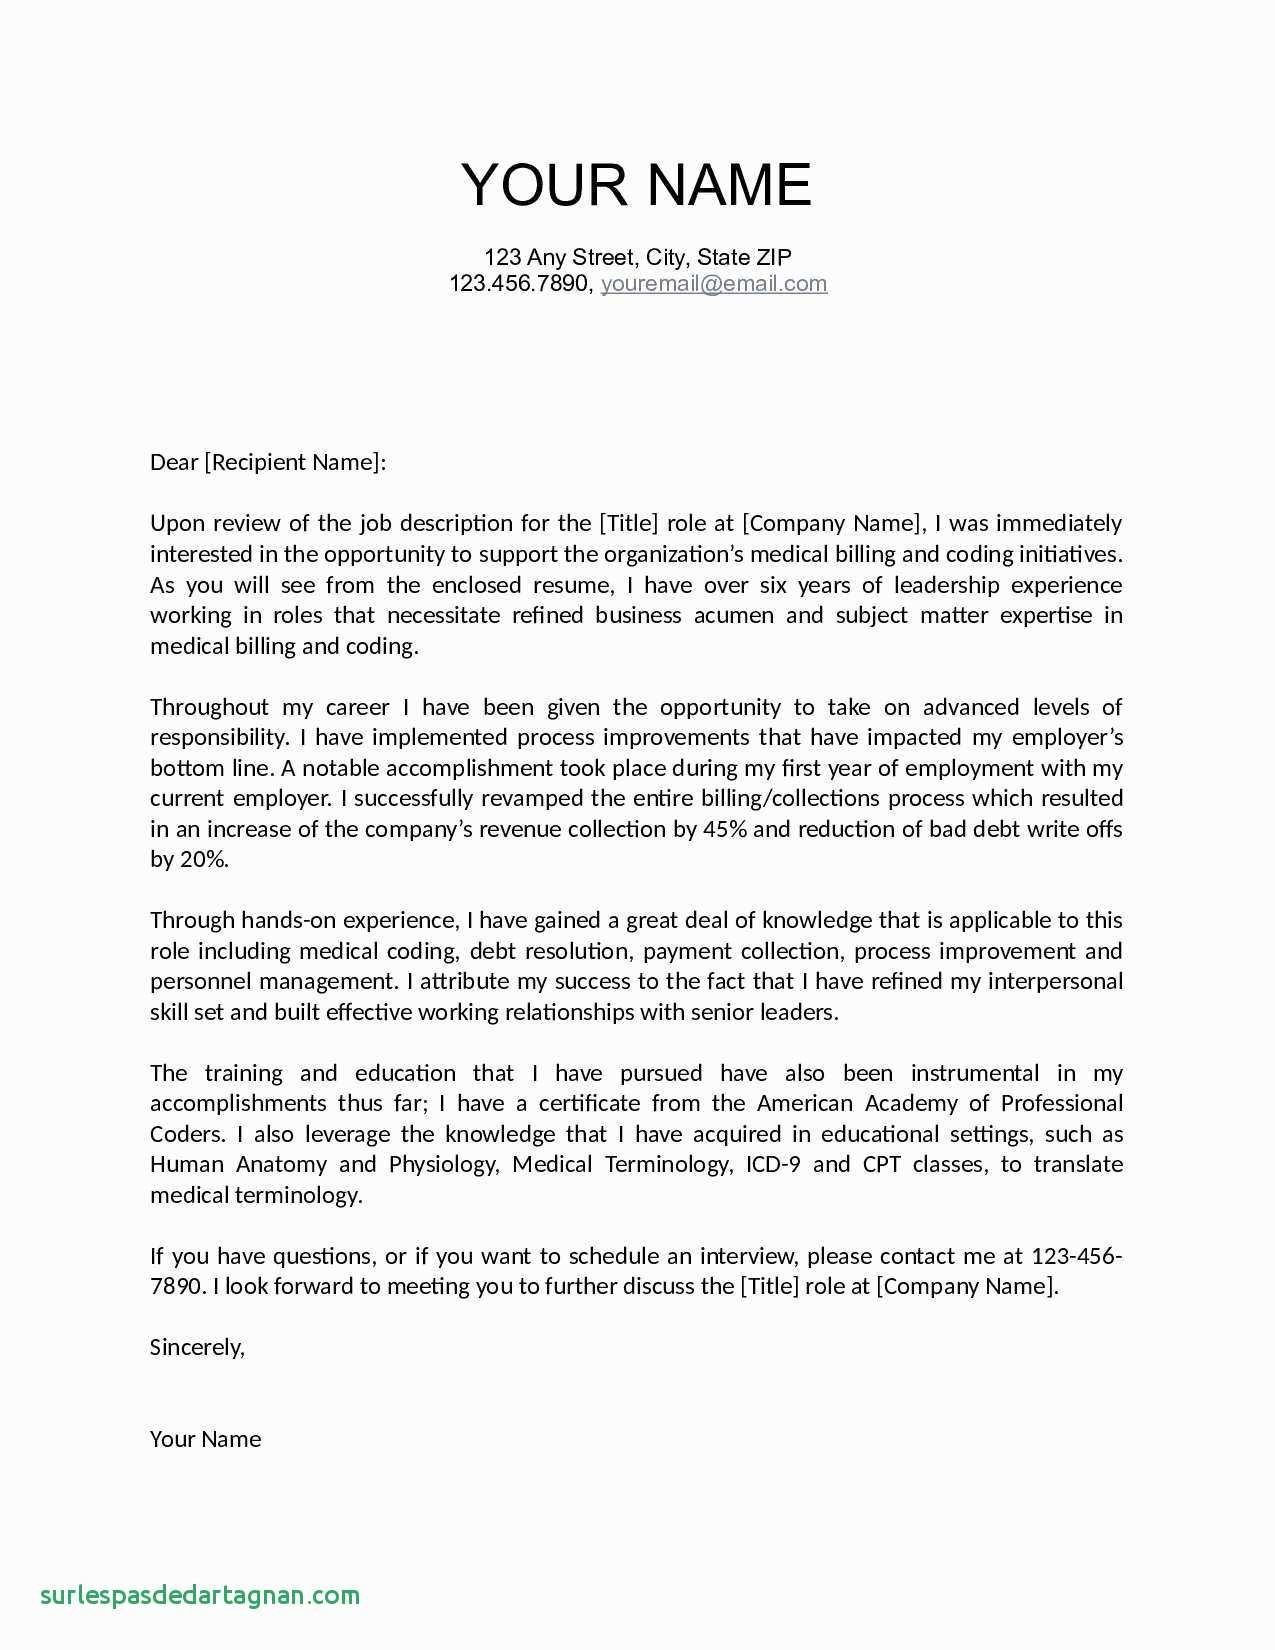 How to Make A Cover Letter Template - How to Make Resume for Job Beautiful Fresh Job Fer Letter Template